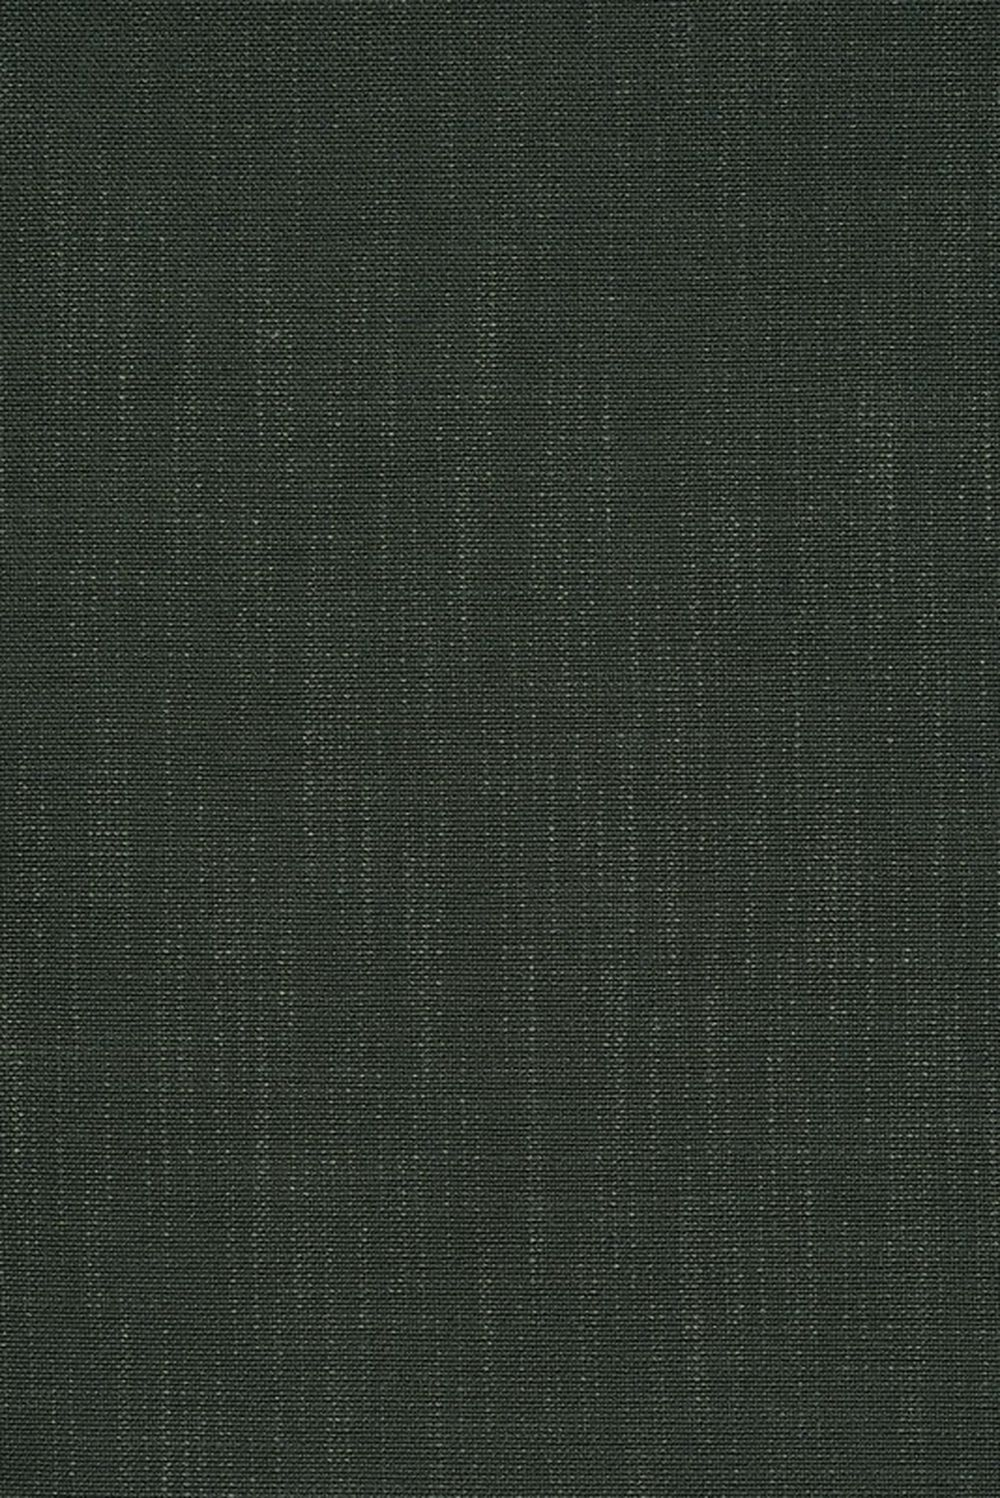 Photo of the fabric Allium Mineral swatch by Mokum. Use for Upholstery Heavy Duty, Accessory. Style of Plain, Texture